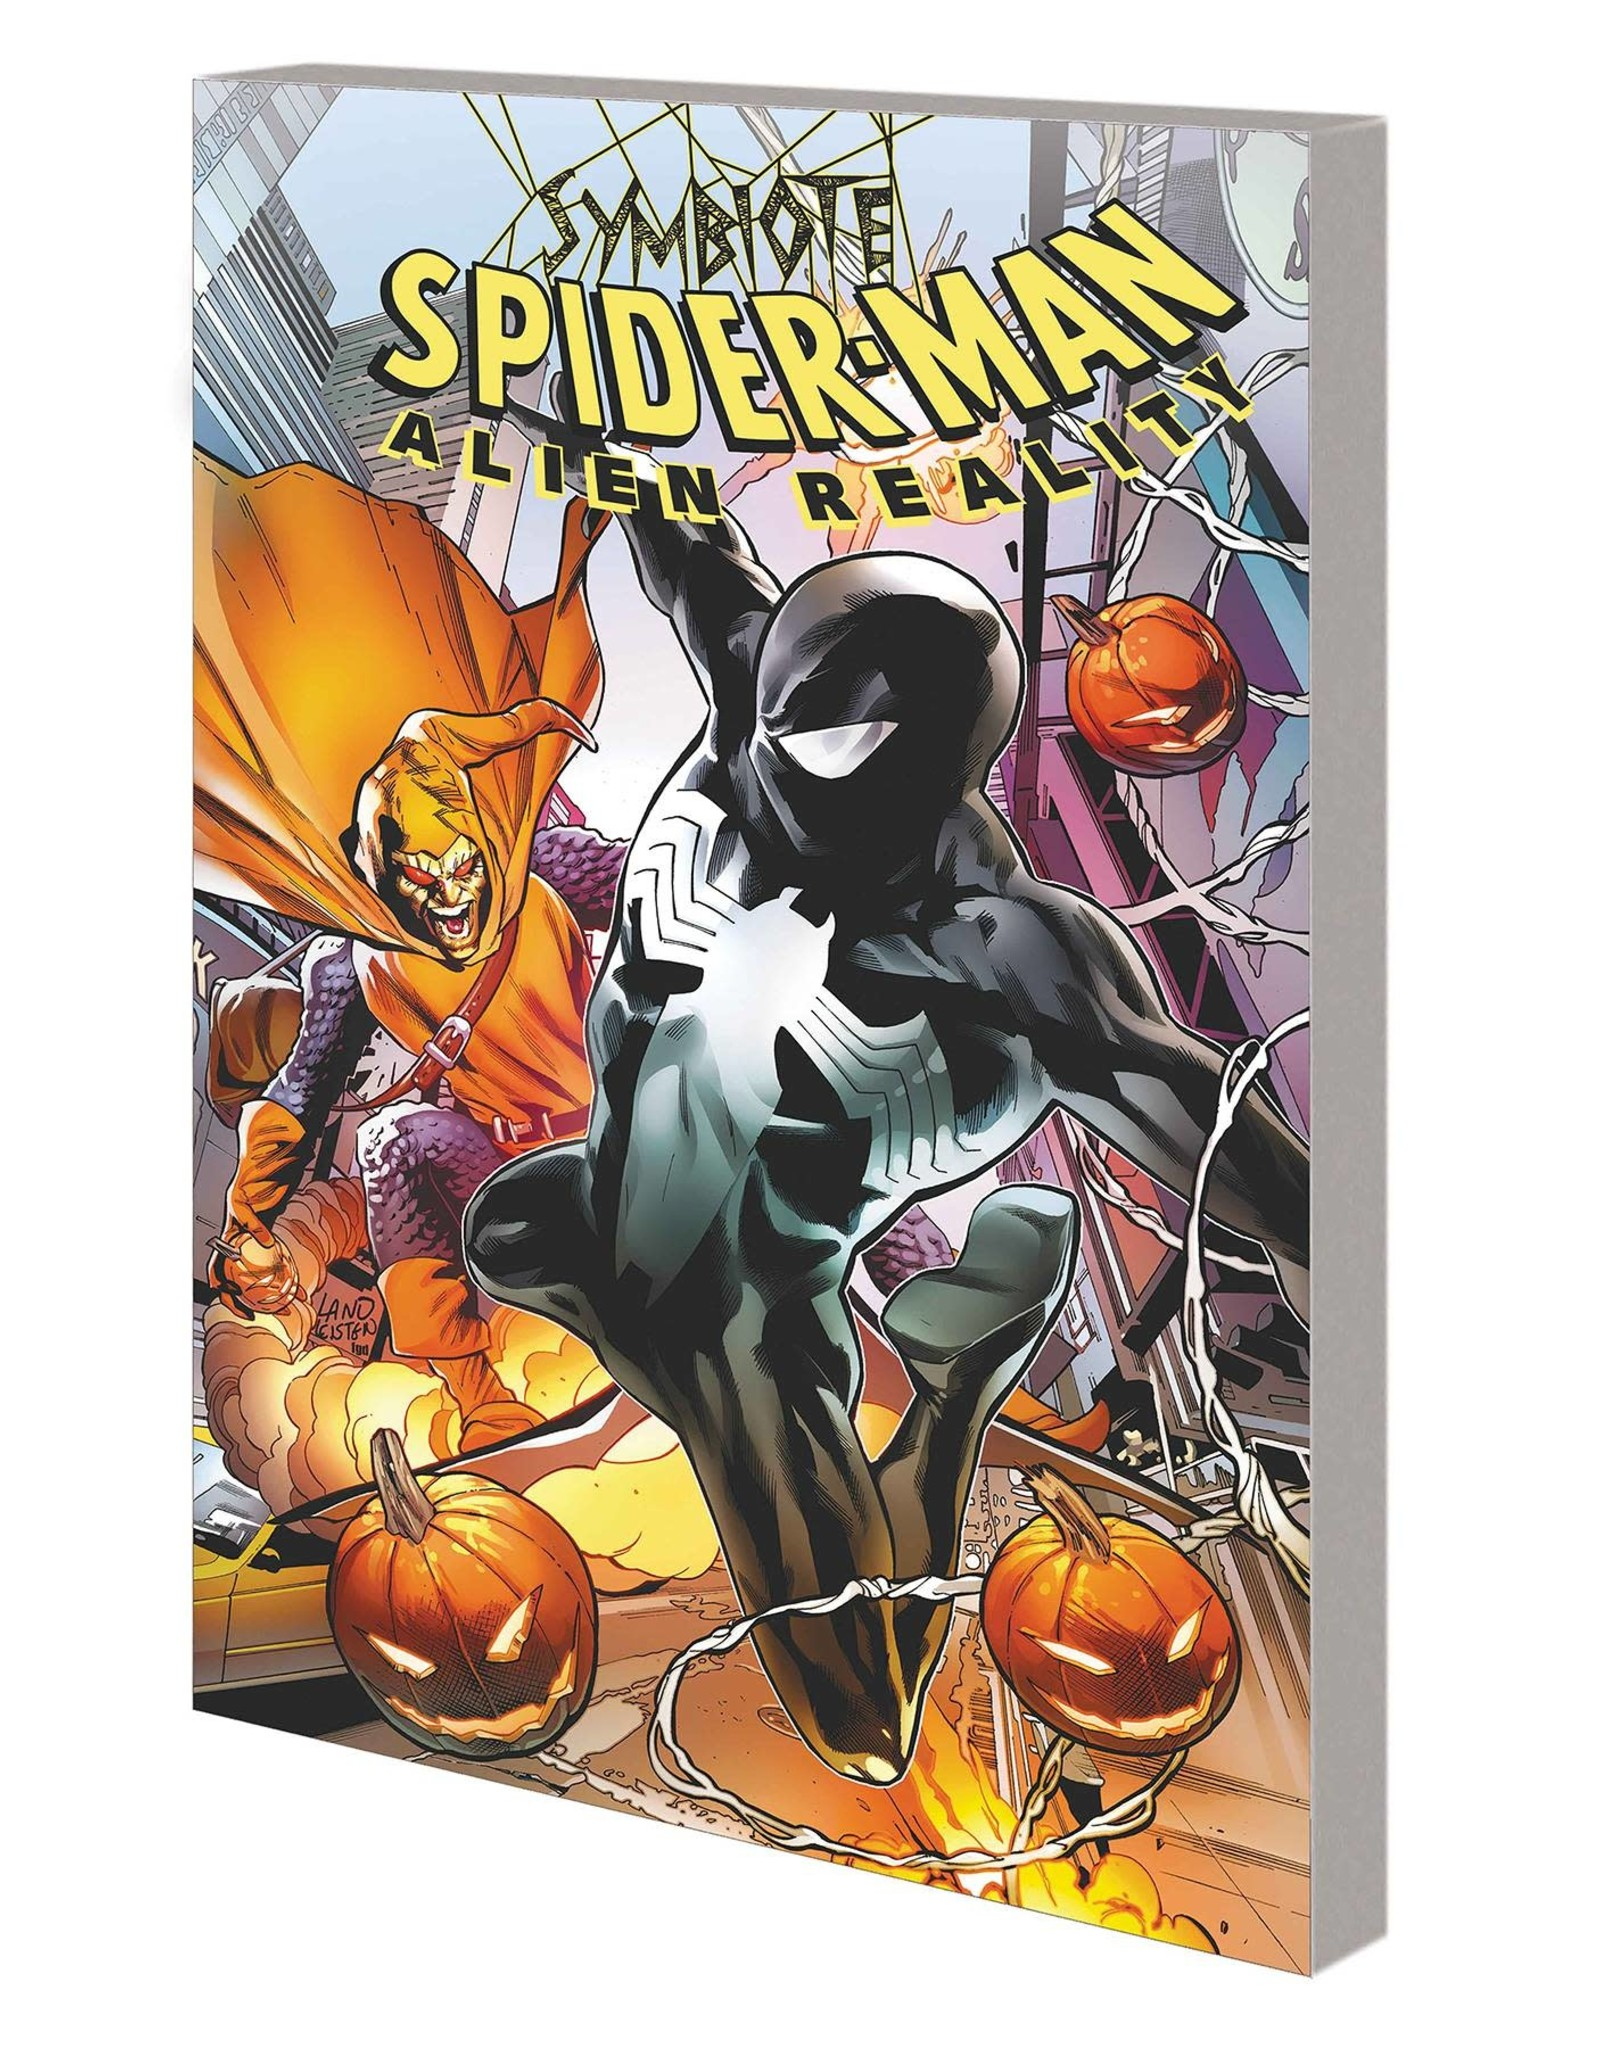 MARVEL COMICS SYMBIOTE SPIDER-MAN TP ALIEN REALITY